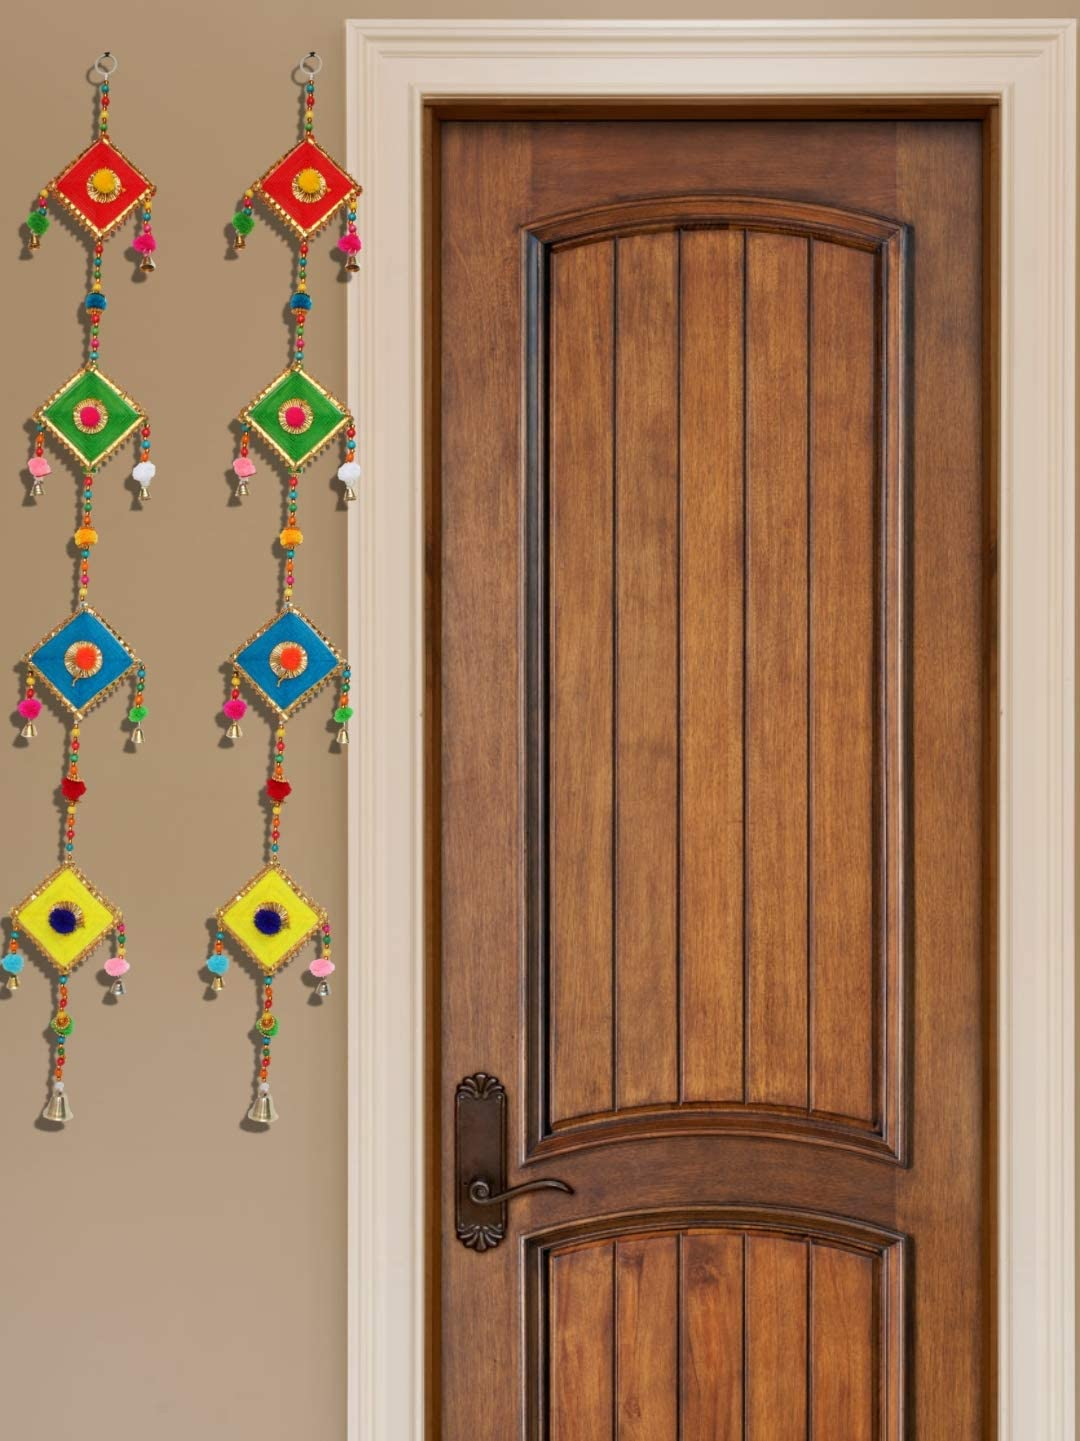 JH Gallery Handmade Woolen Kite Door Hangings/Wall Hanging/Home Décor/Home Furnishing/Diwali Gift/Corporate Gift (39 Inches) (1 Pair)